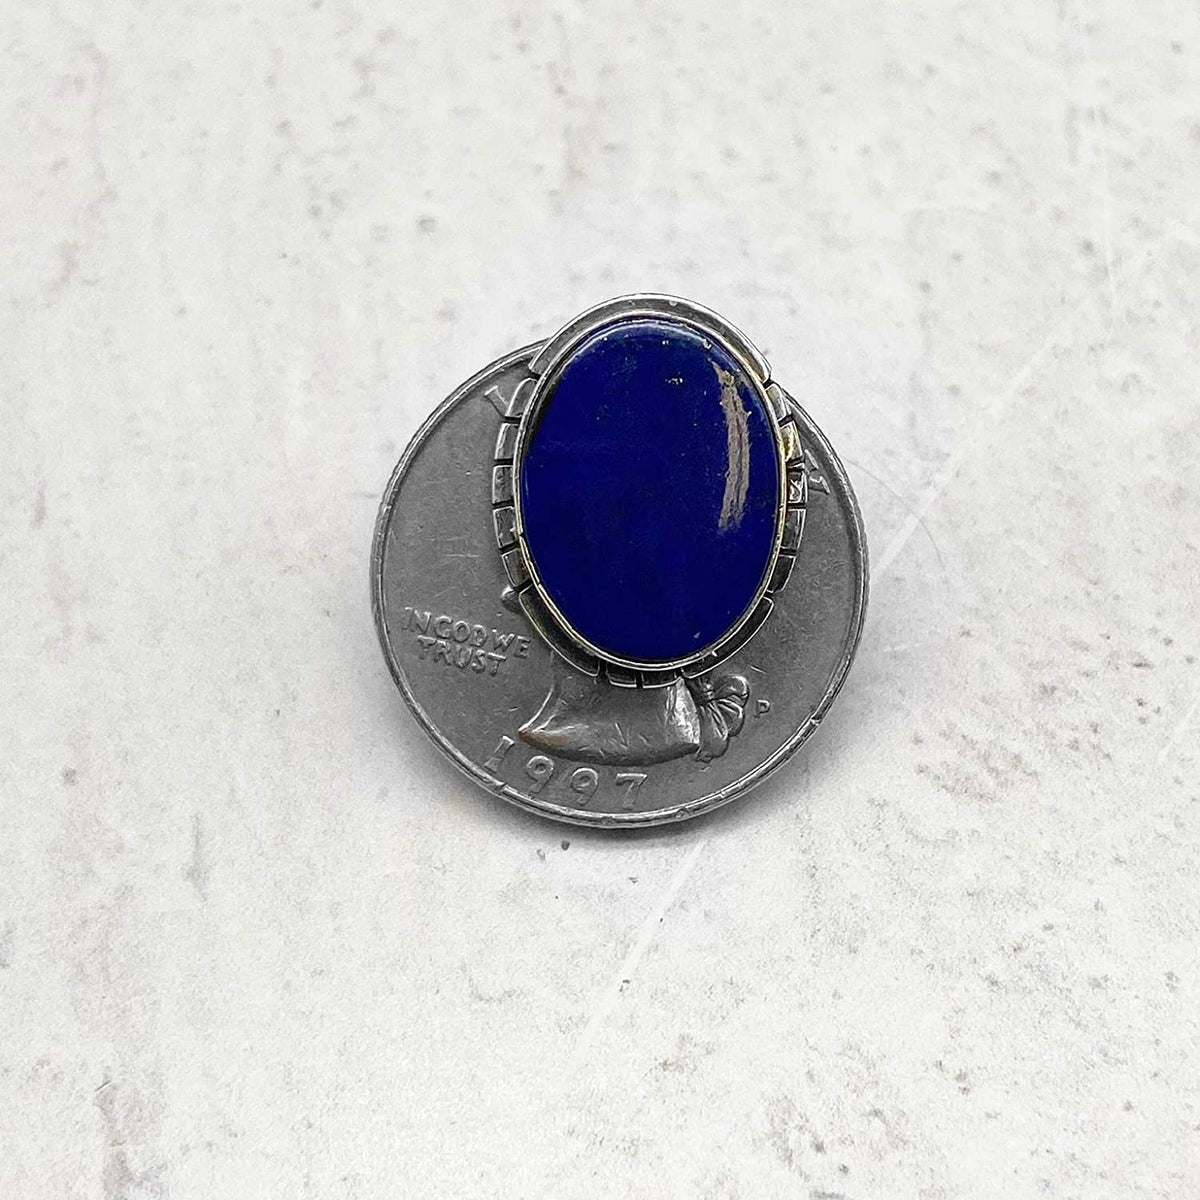 Genuine Lapis Lazuli Post Earrings, 925 Sterling Silver, Authentic Native American, Artisan Signed,Handmade in the USA, Nickle Free, Navy Blue